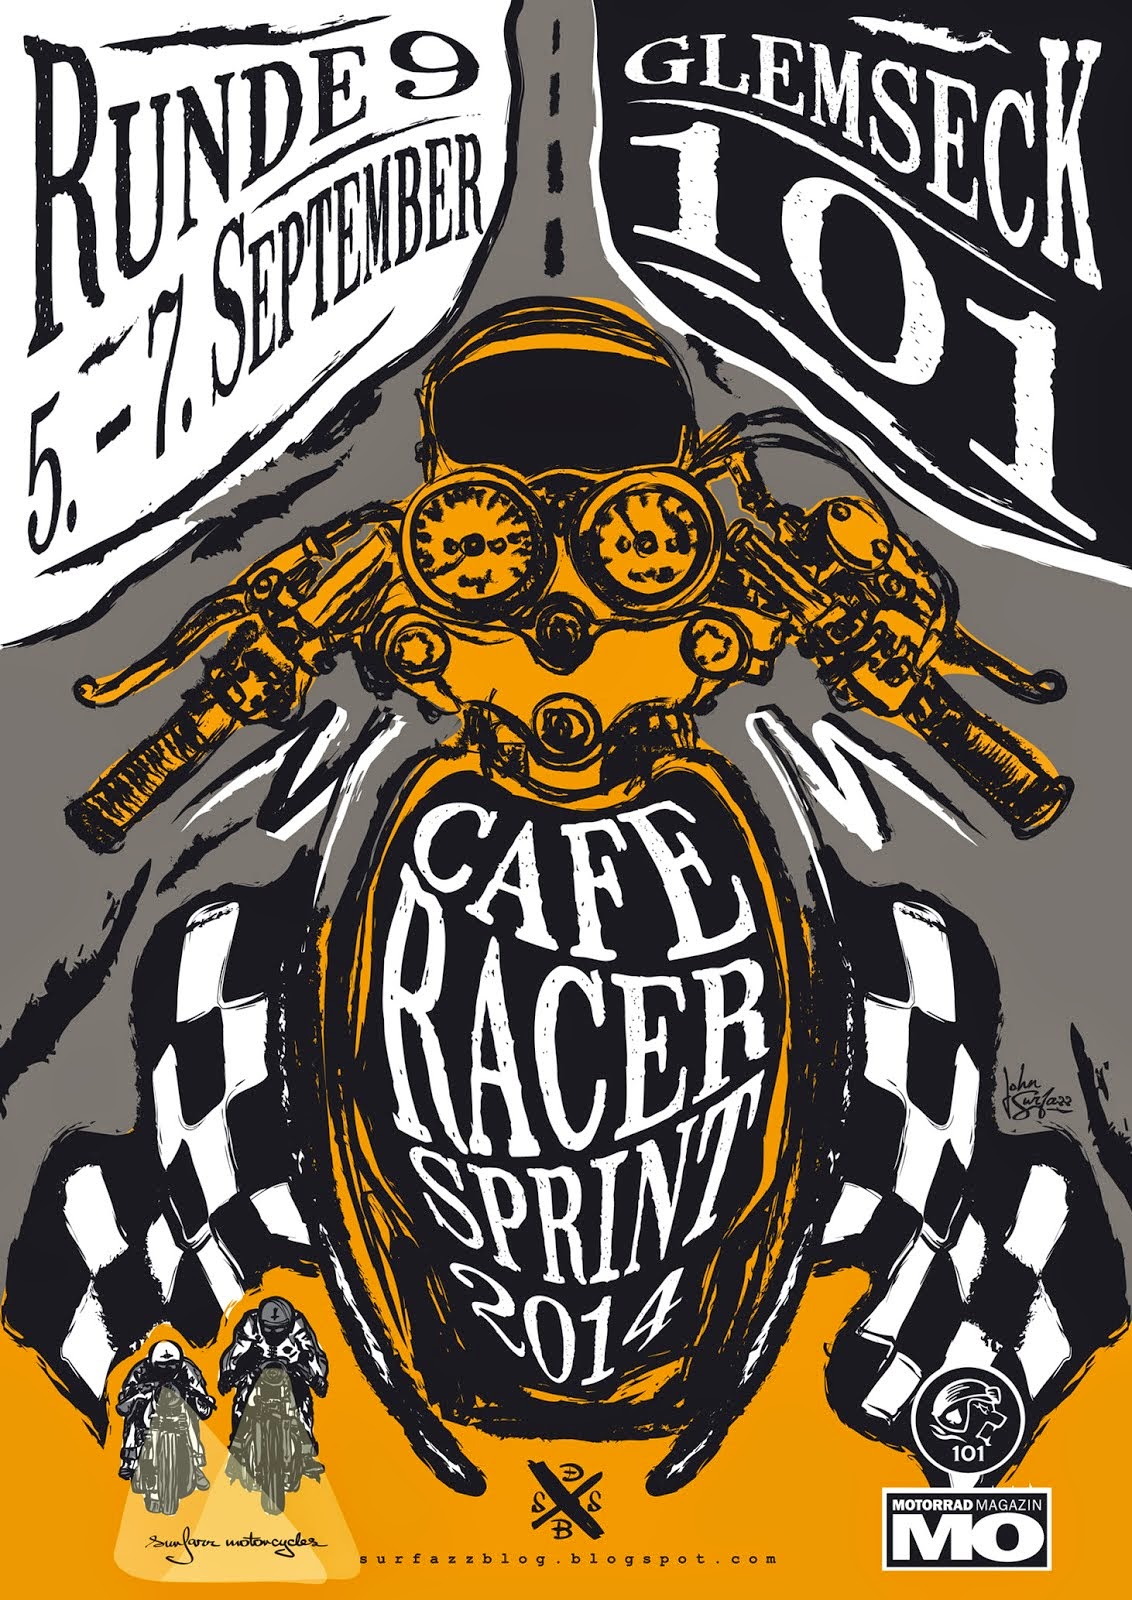 the Cafe Racer Sprint 2014 Poster